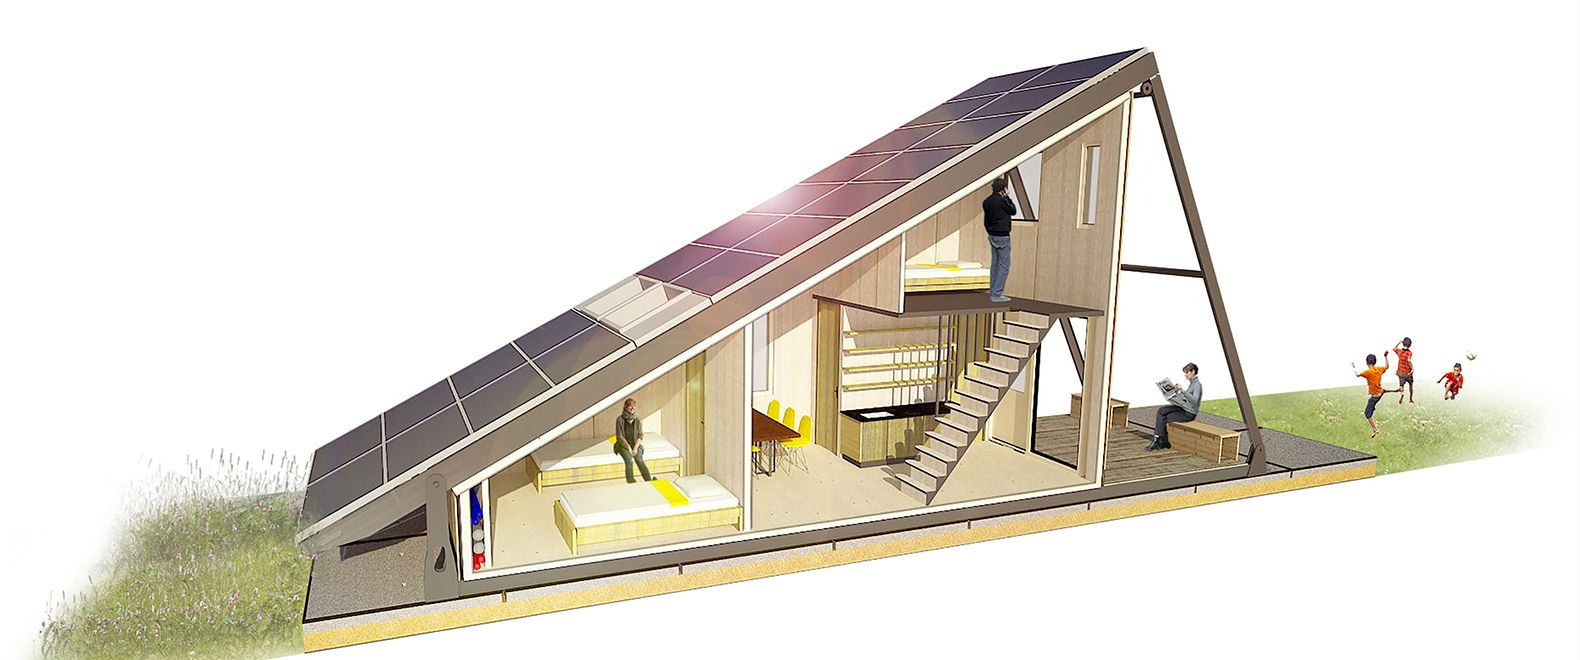 Solar Cabin Modular Refugee Housing With An Energy Generating